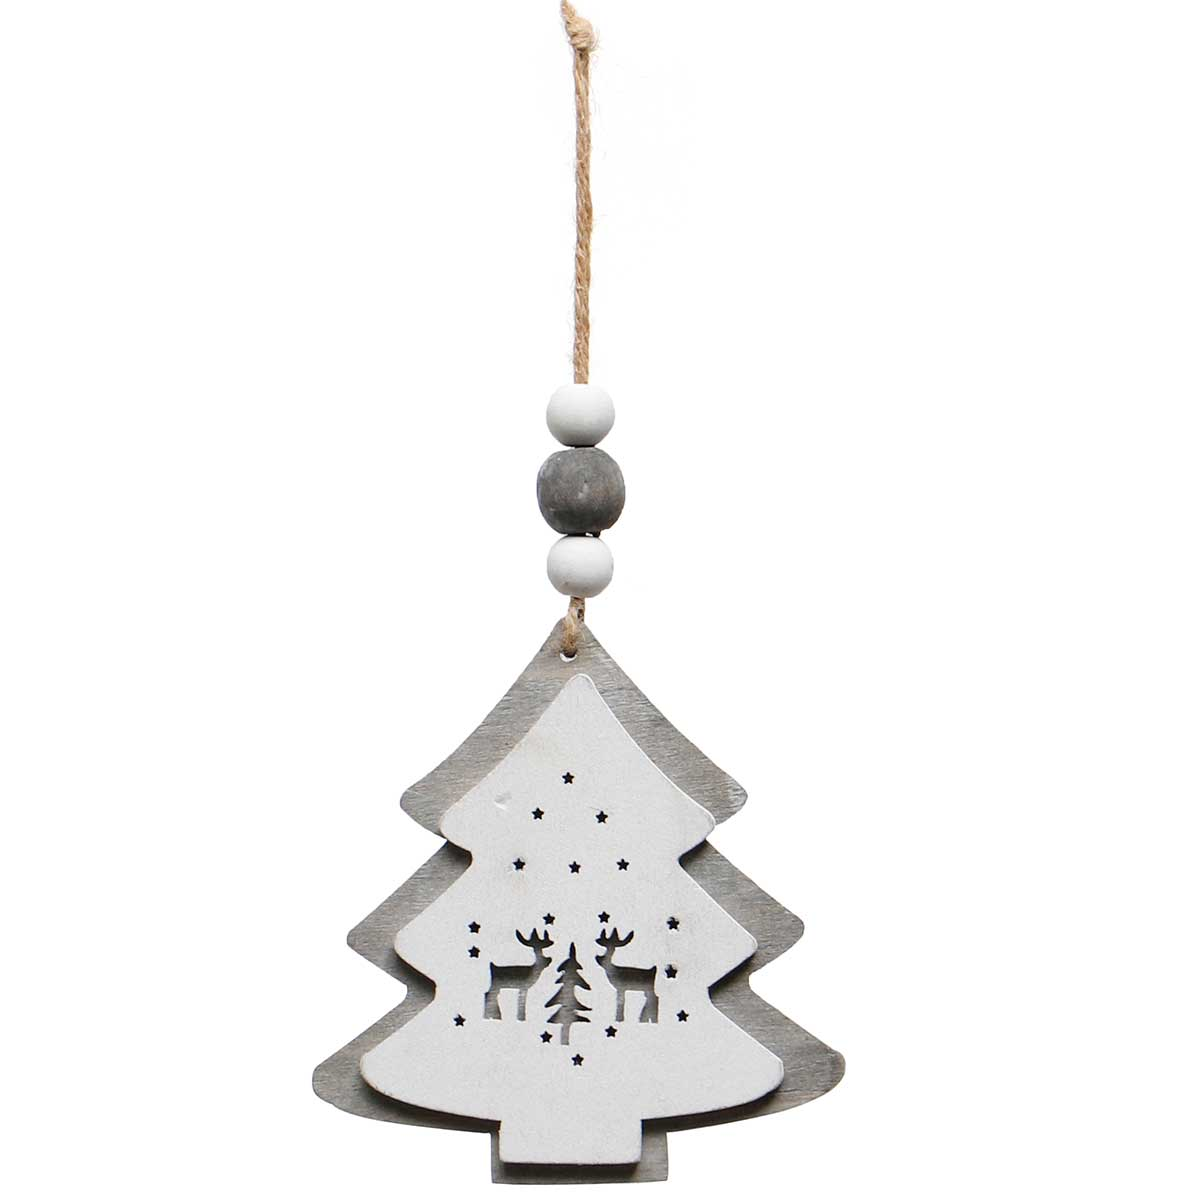 GREY/WHITE WOOD TREE ORNAMENT AMENT